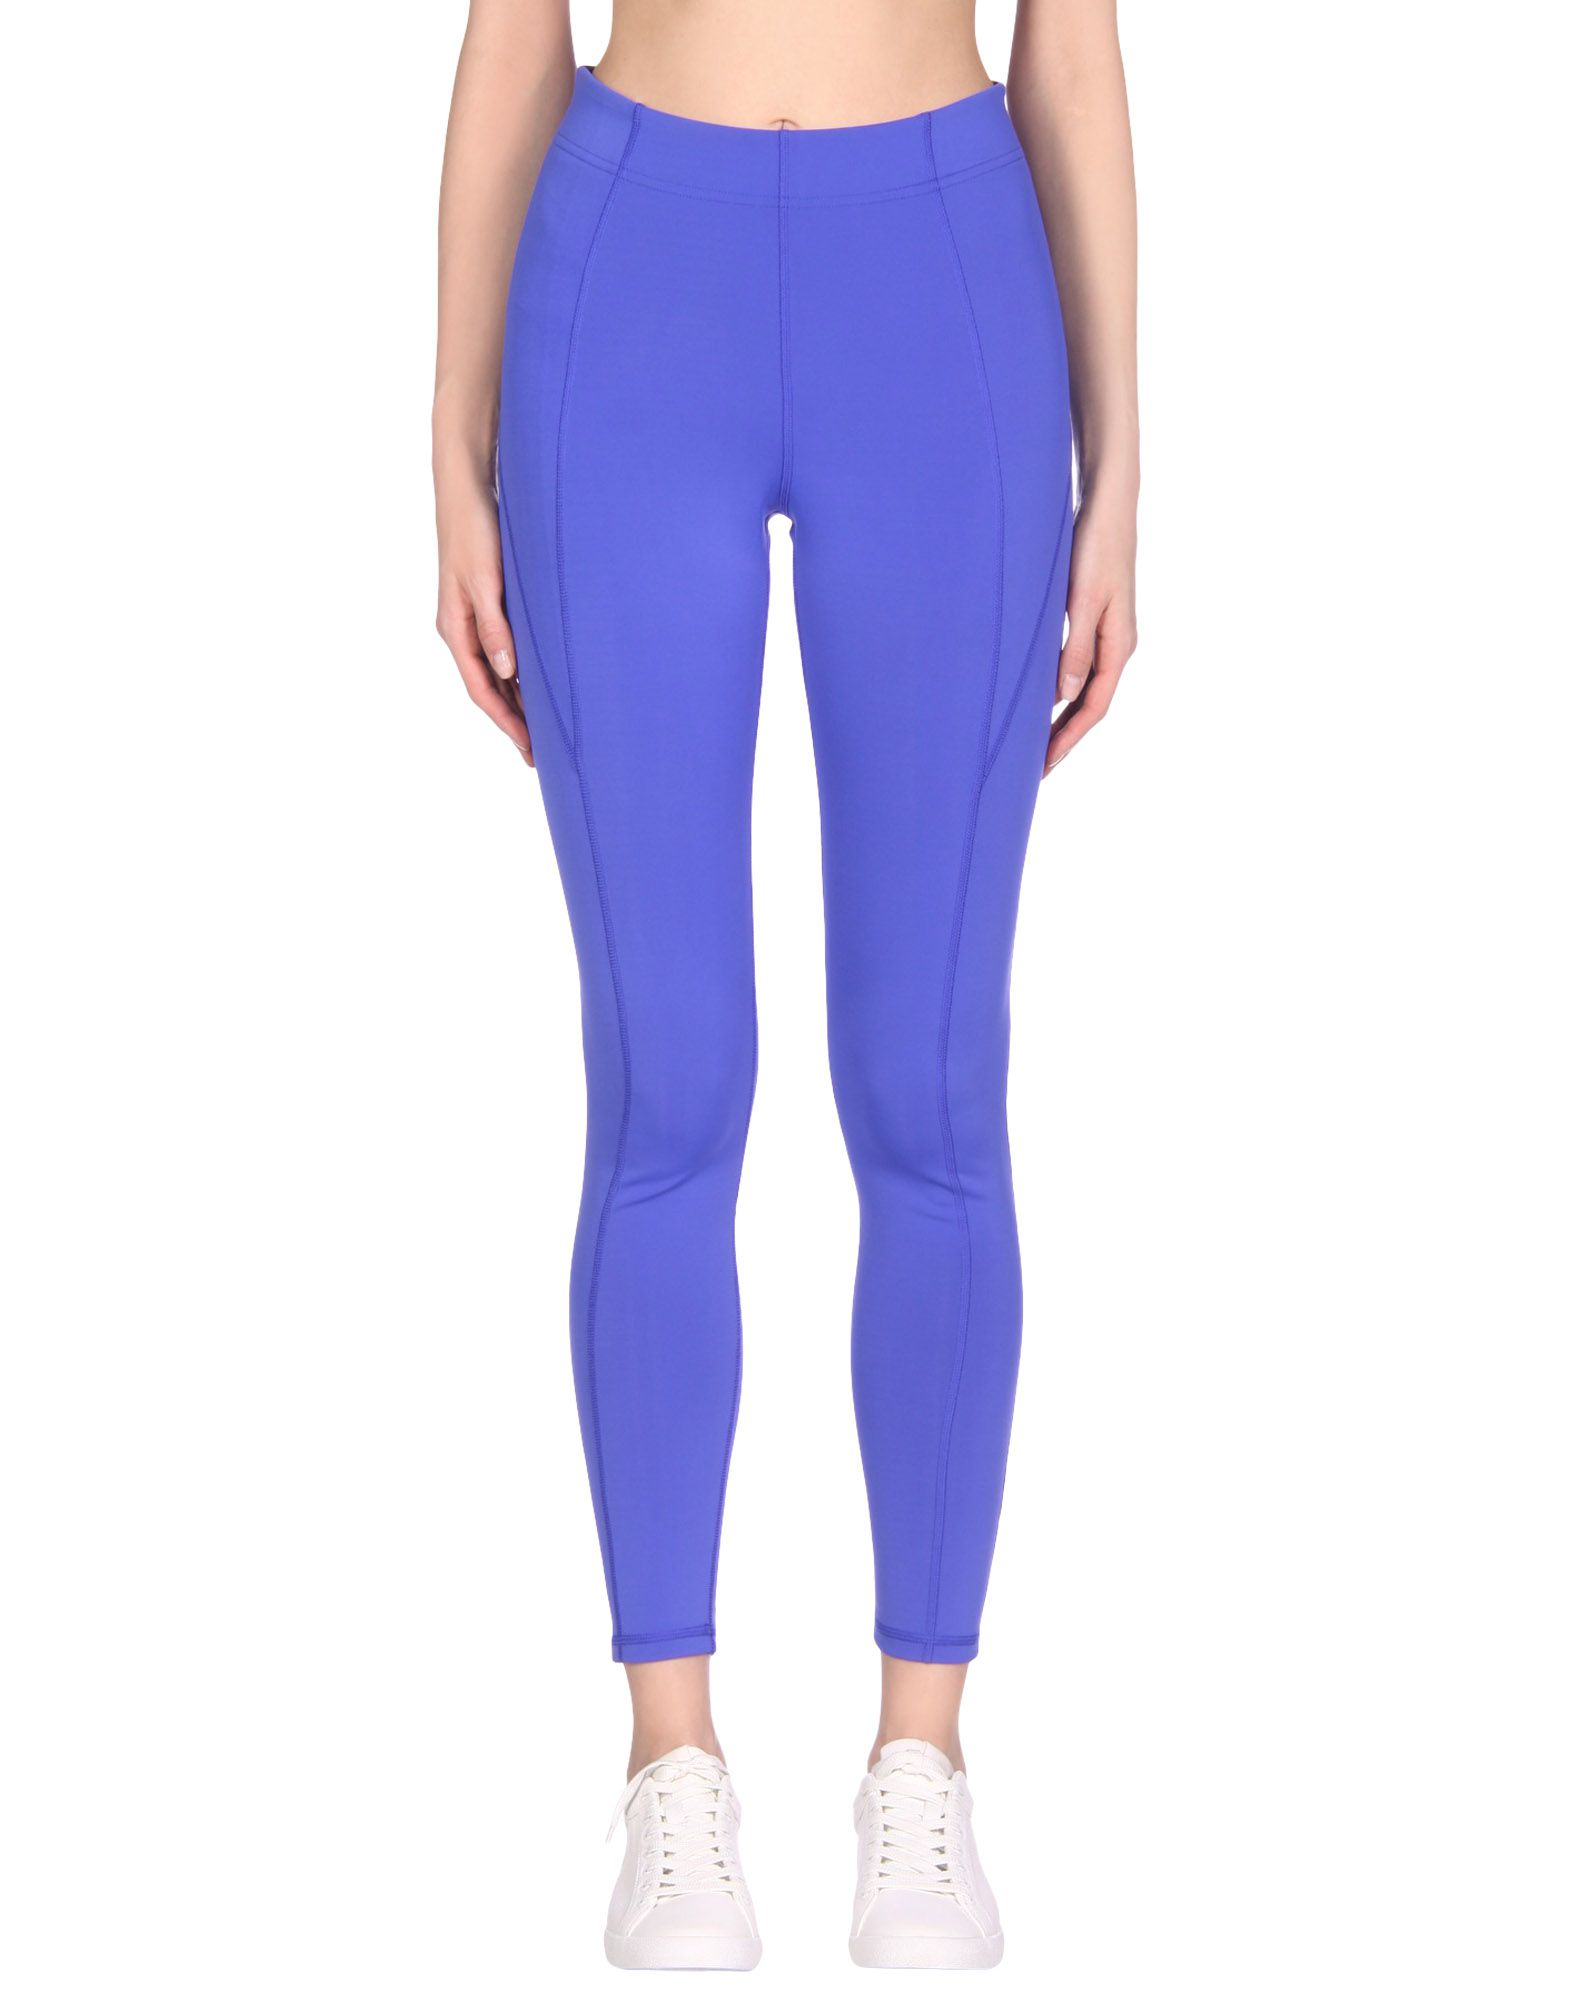 PURITY ACTIVE Leggings in Bright Blue